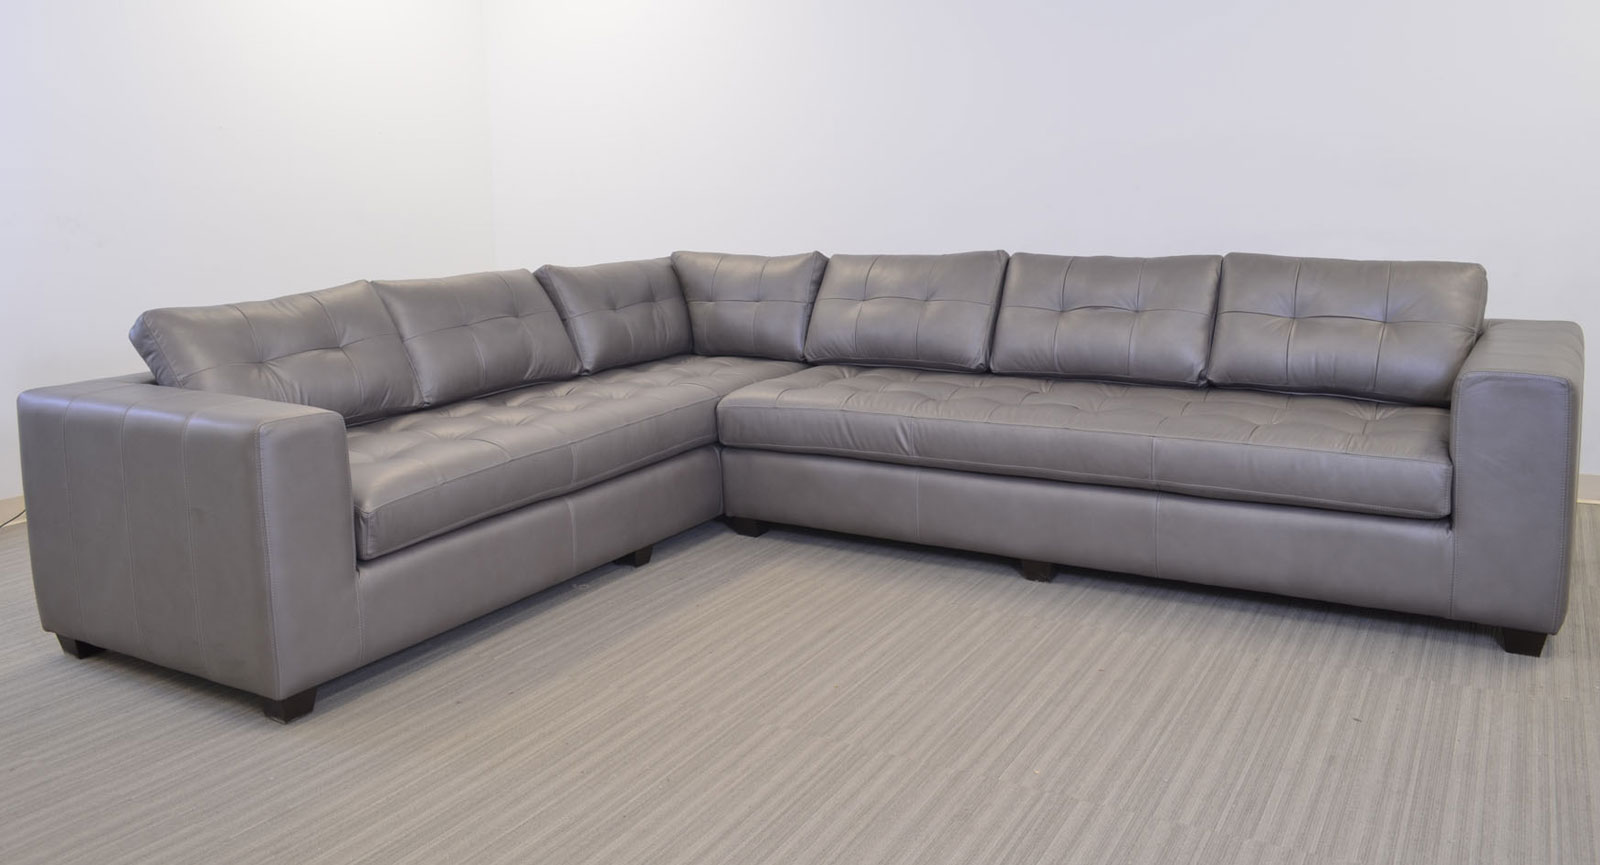 Gev Right Arm Corner Sofa Left Arm Sofa Gray